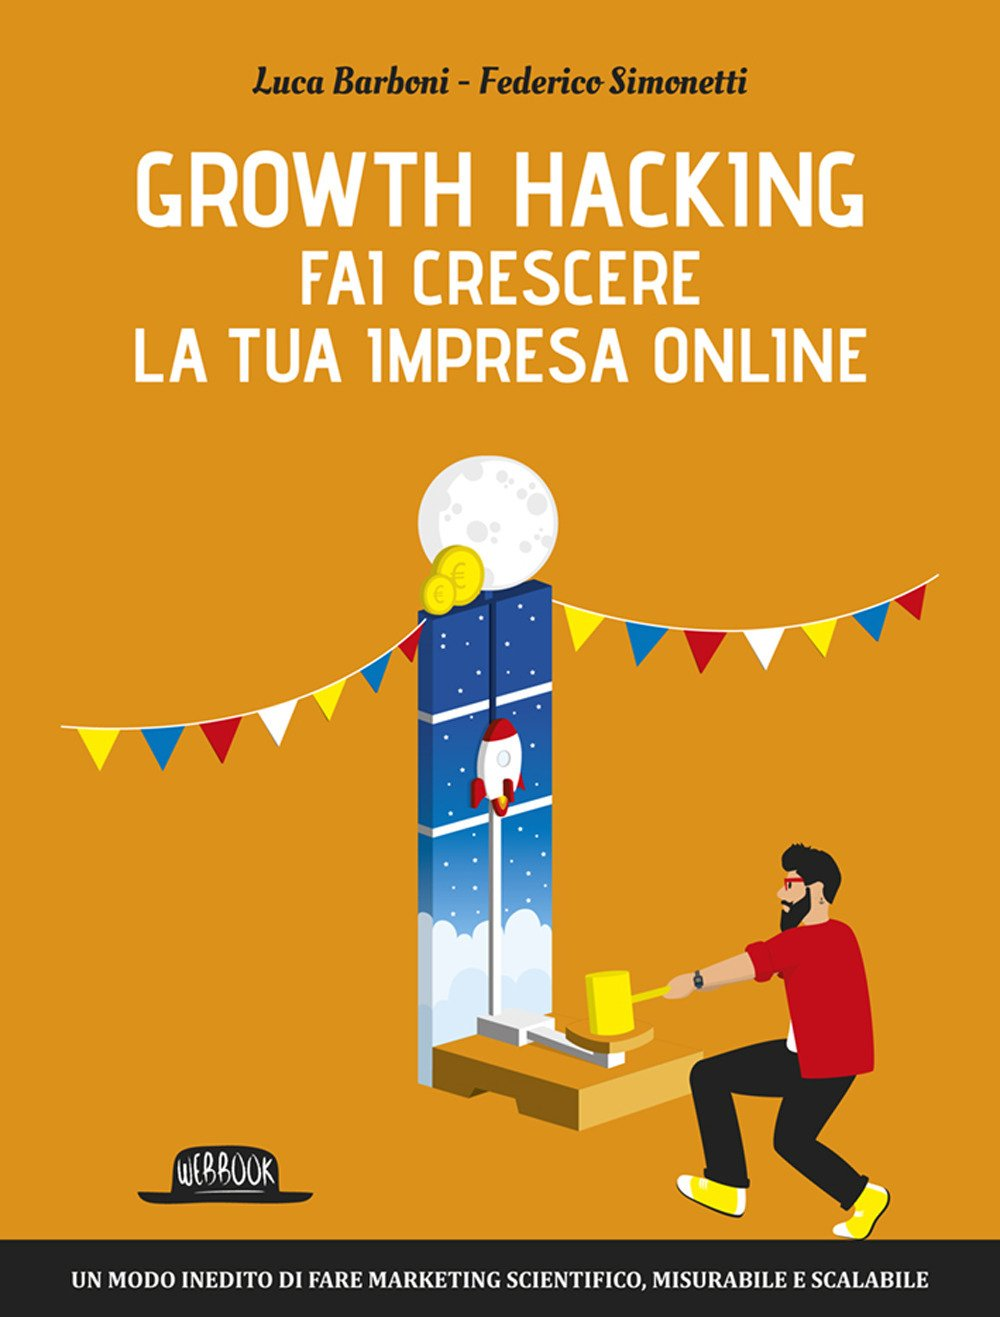 Hai una start-up? Muovi i primi passi con il growth hacking con questo manuale